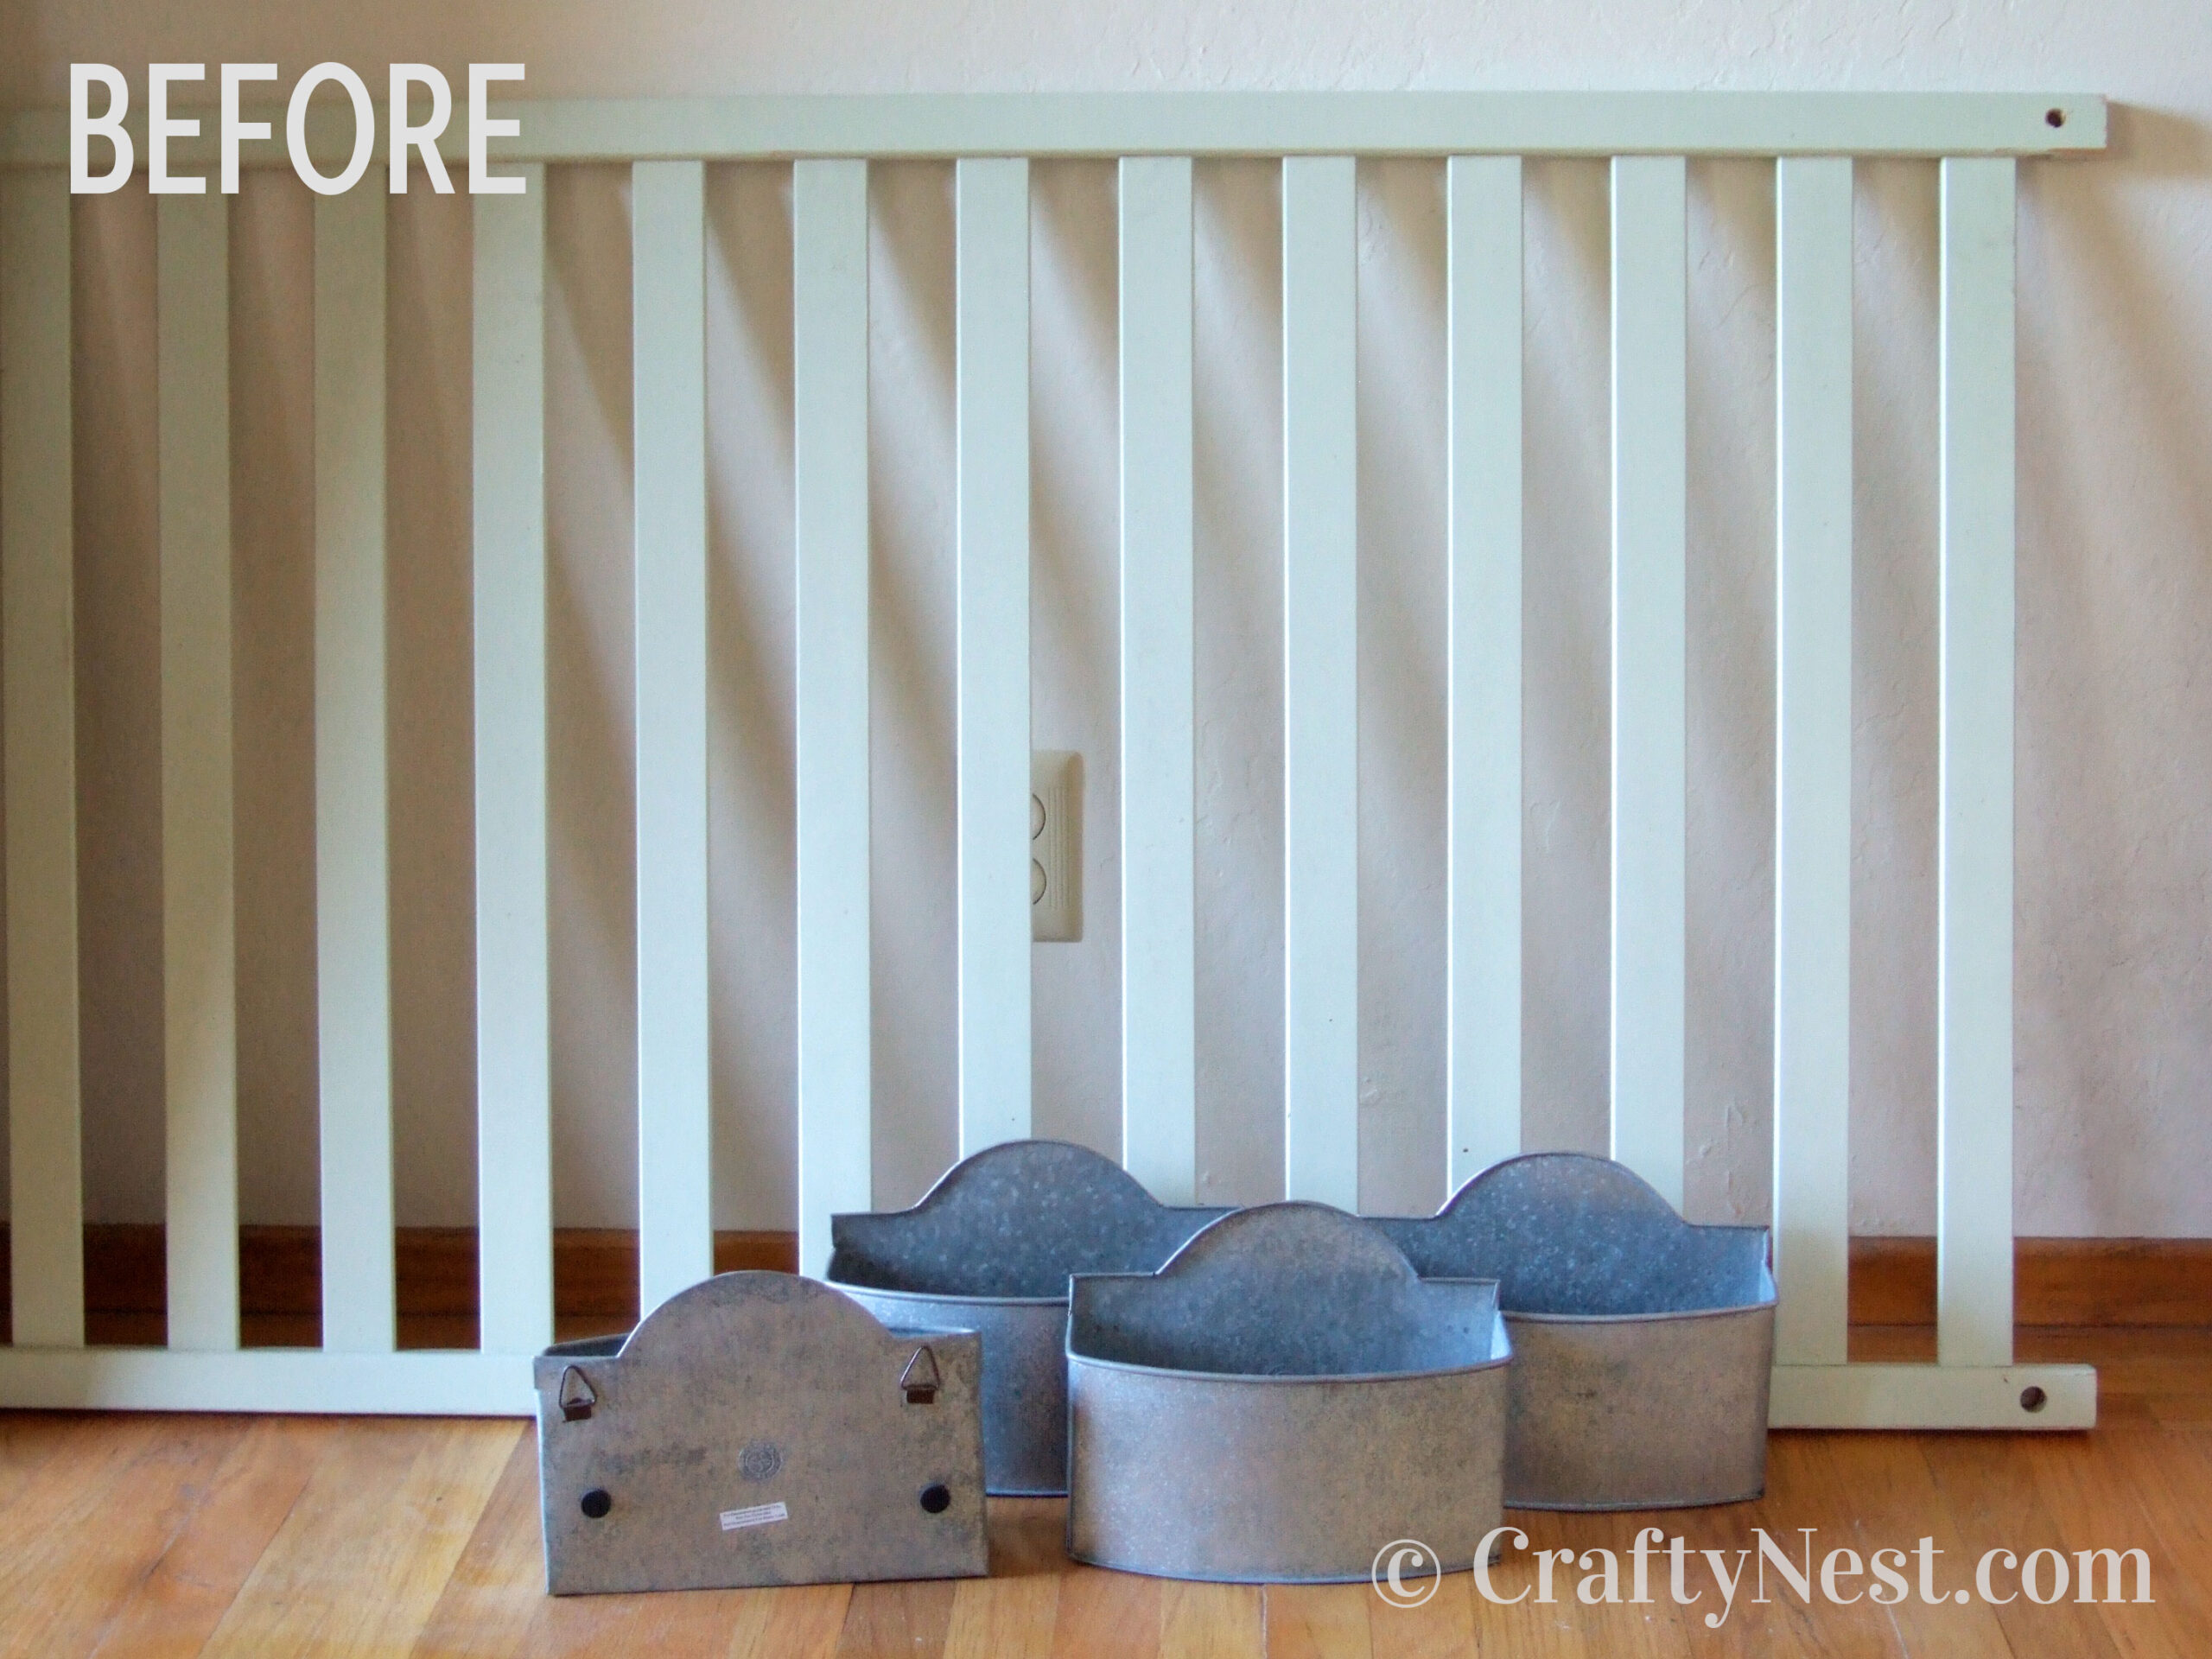 Crib railing that was used as tool organizer, before photo